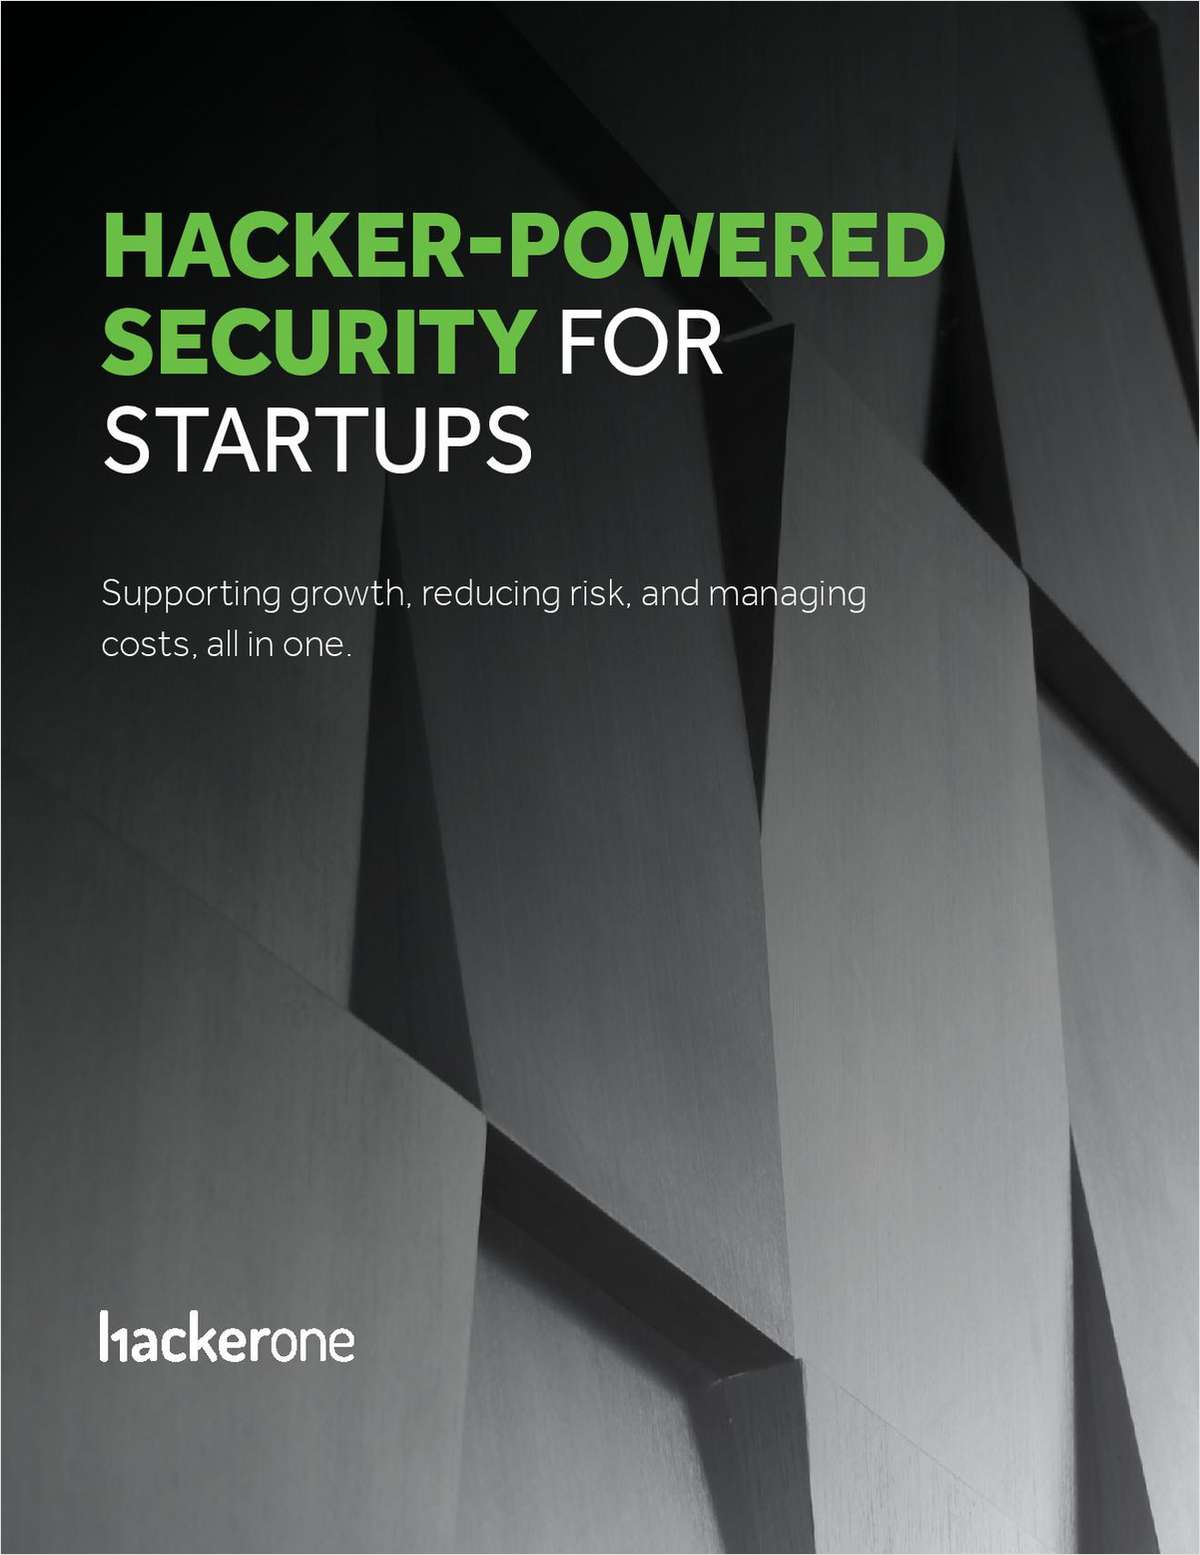 Hacker-Powered Security for Startups, Free HackerOne eBook